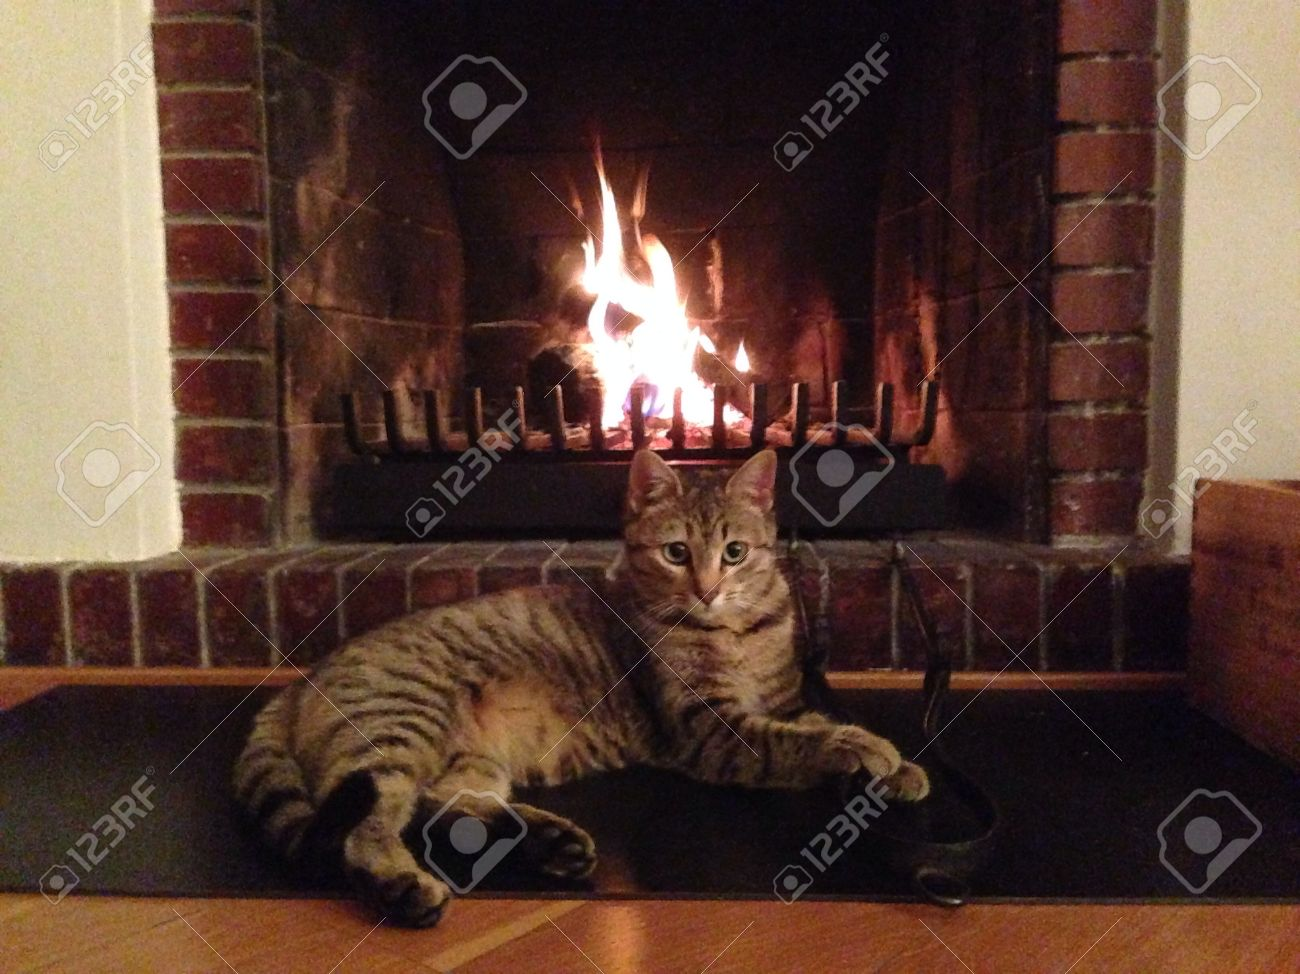 cat curled up on the carpet in front of a roaring fire stock photo